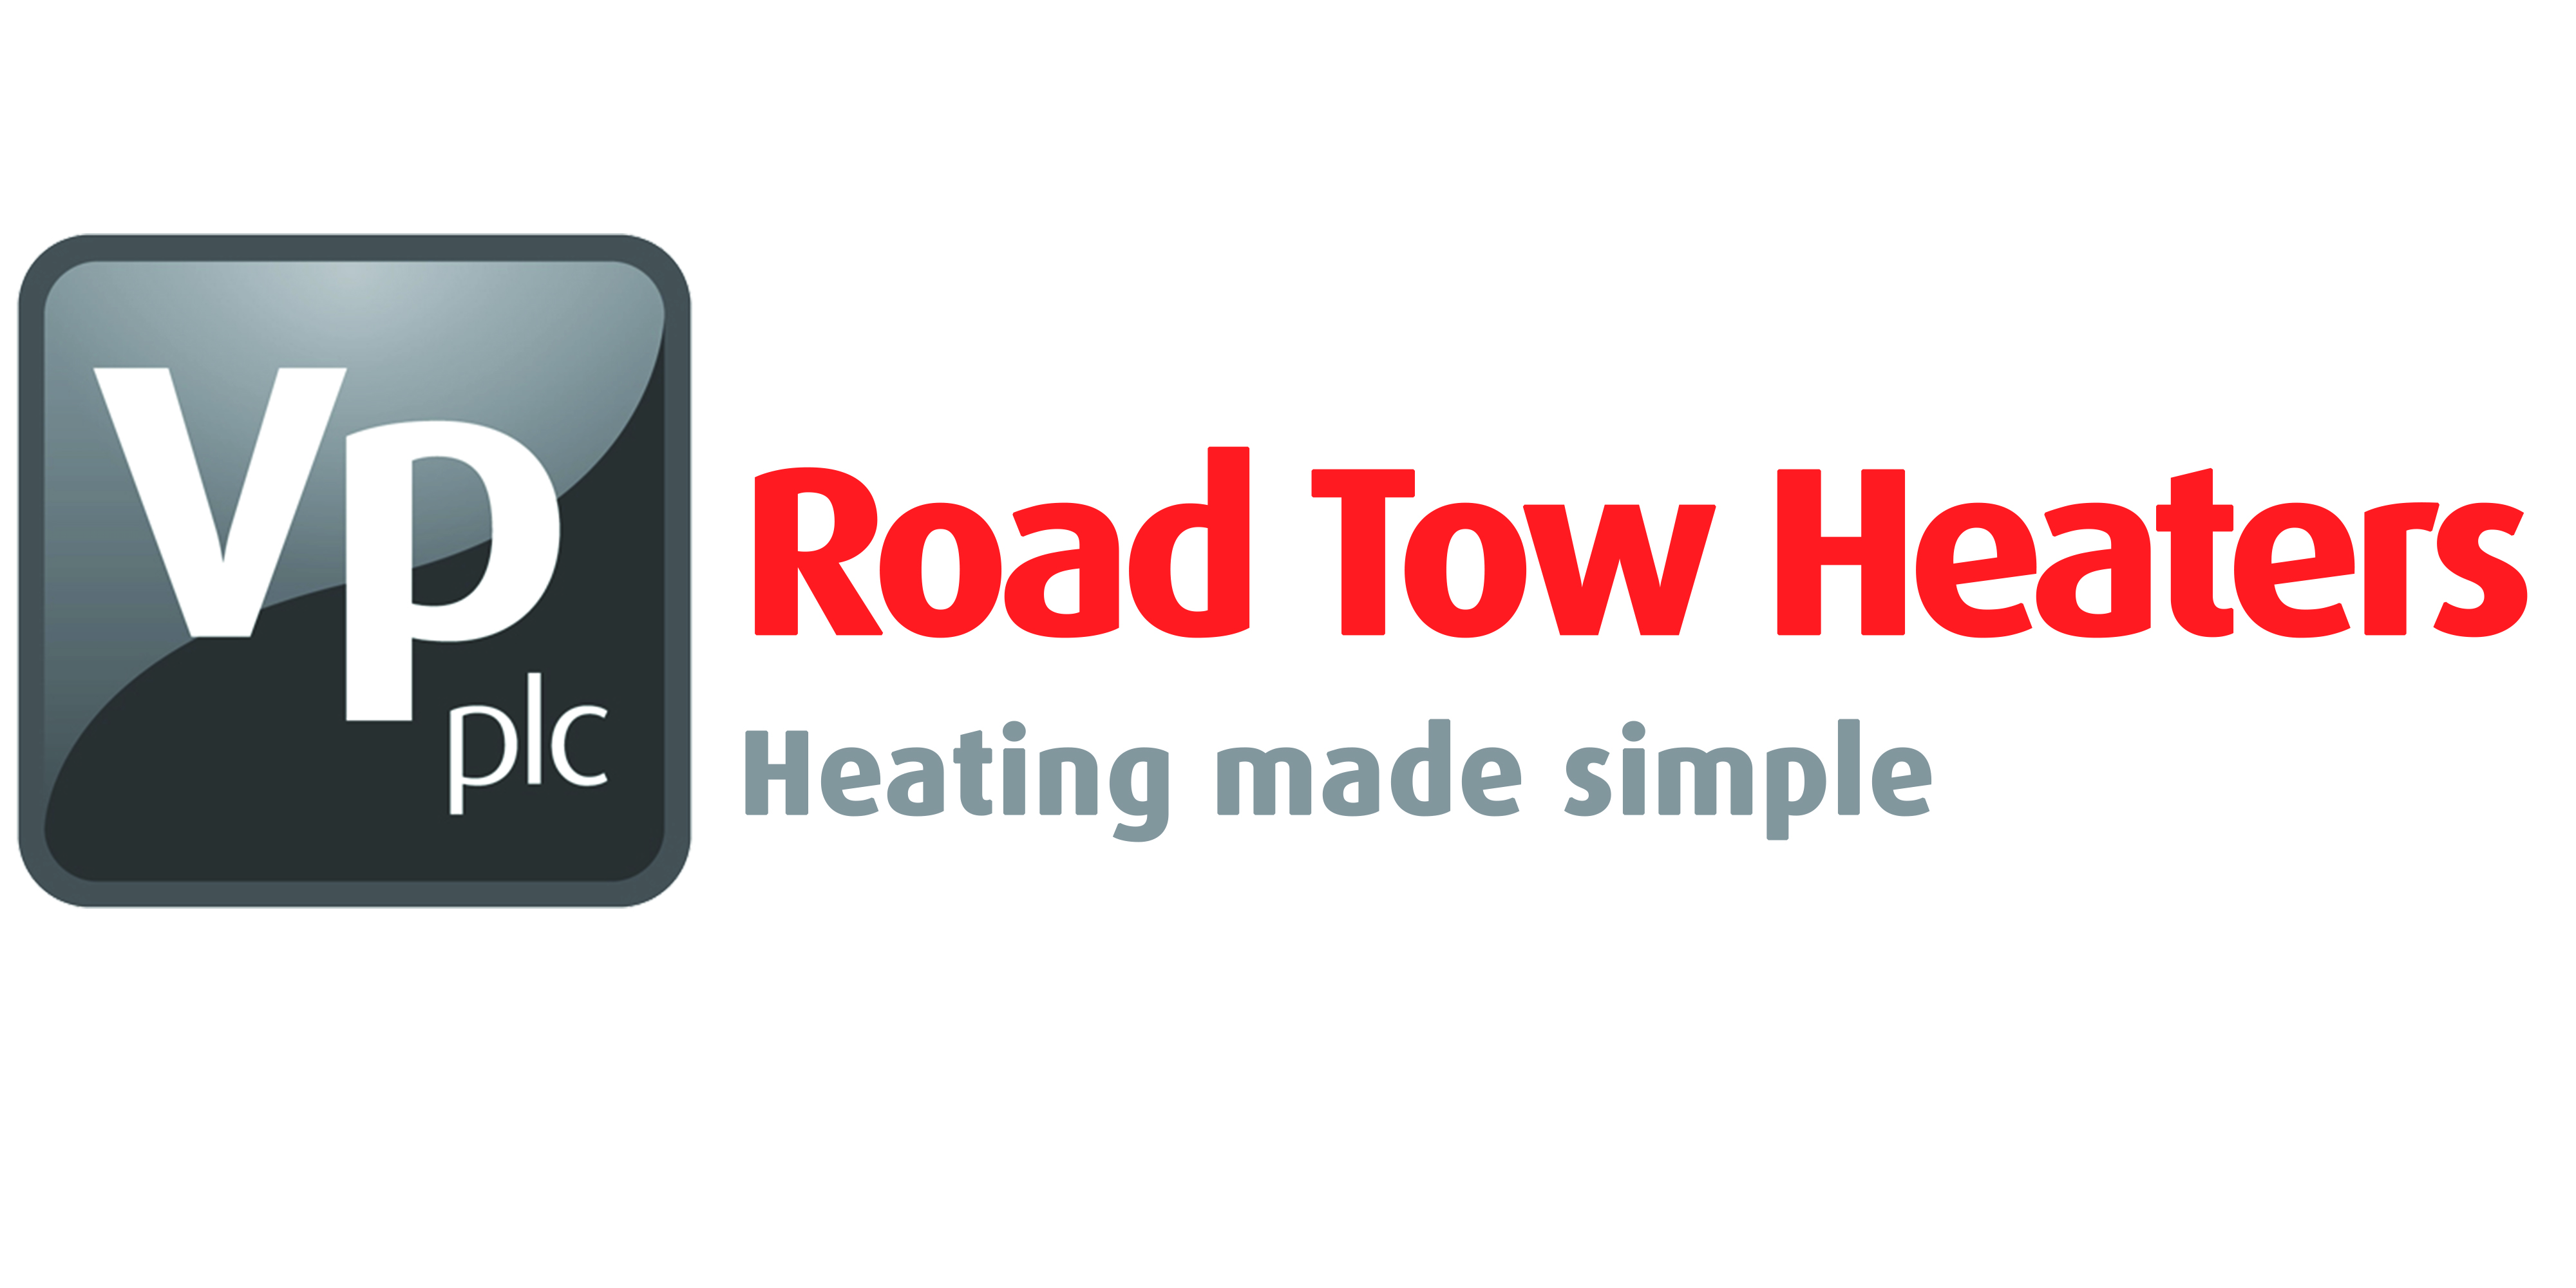 Airport Heating Equipment, Ground Support Heaters, Aircraft Heaters, Towable Heaters